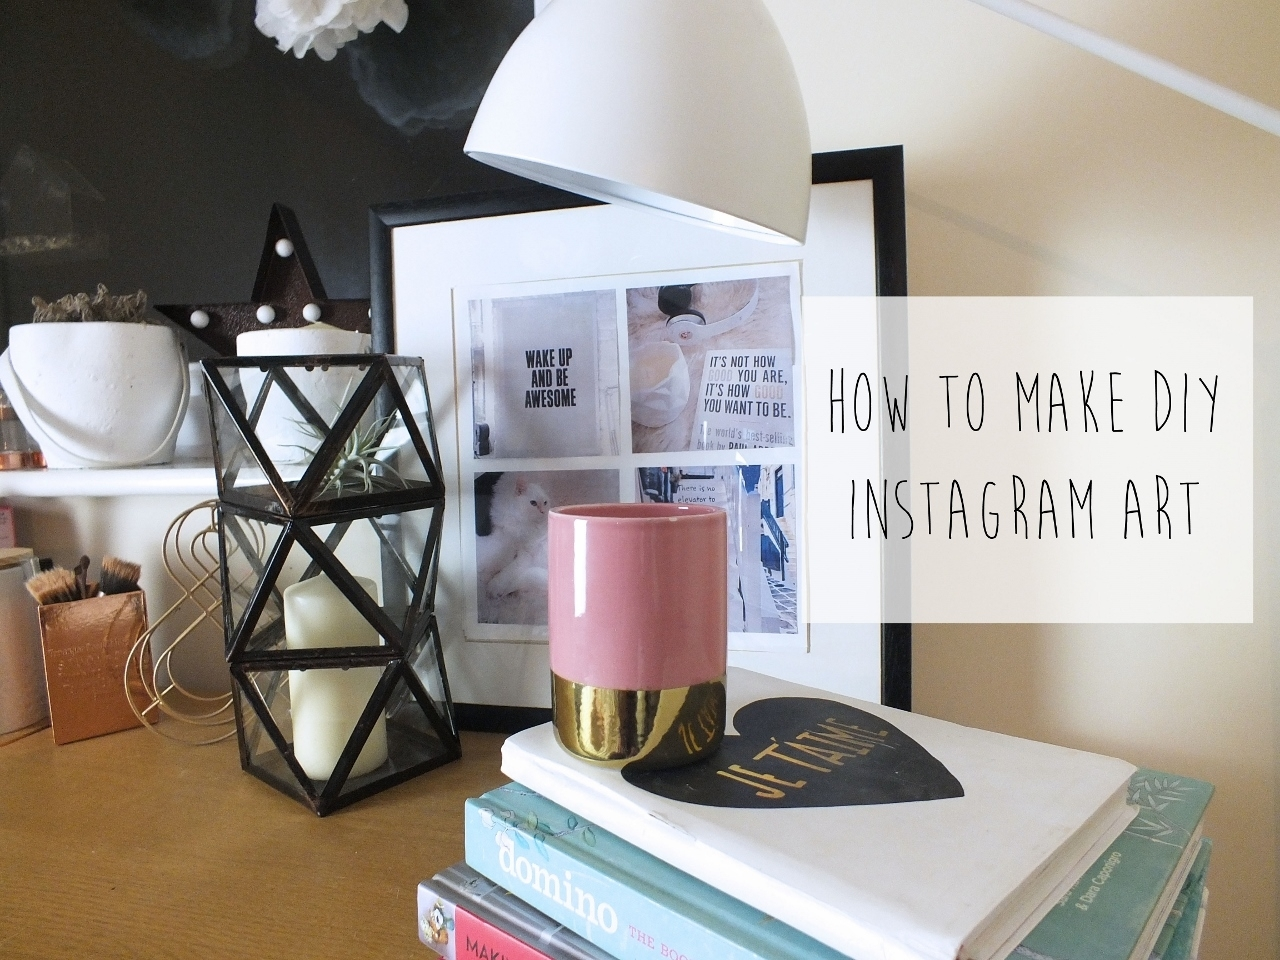 How To Make Diy Instagram Wall Art – Don't Cramp My Style For Latest Instagram Wall Art (Gallery 14 of 20)